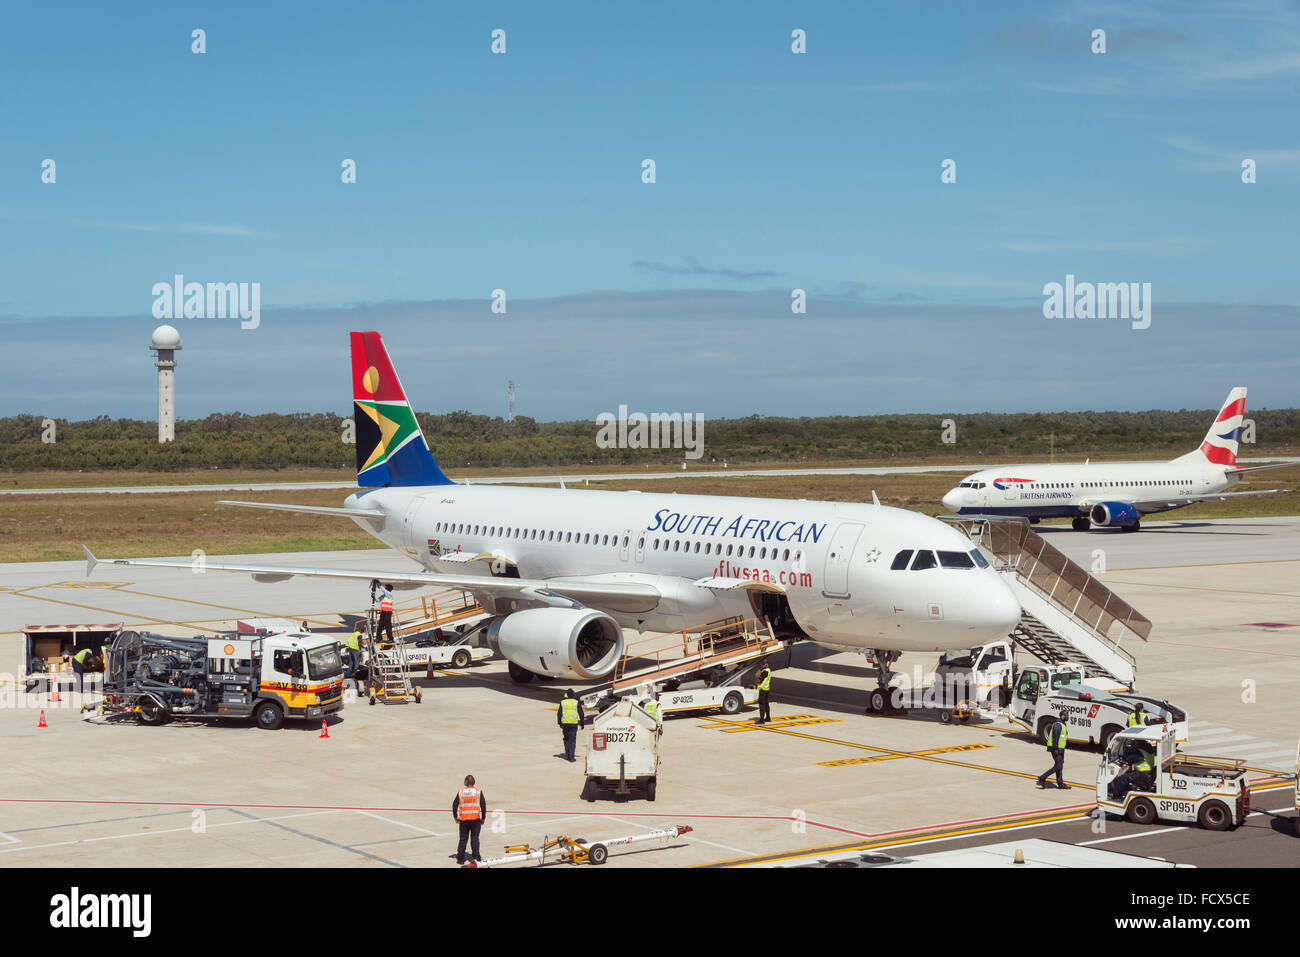 South African Airways Airbus A320 aircraft, Port Elizabeth International Airport, Port Elizabeth, Eastern Cape, - Stock Image